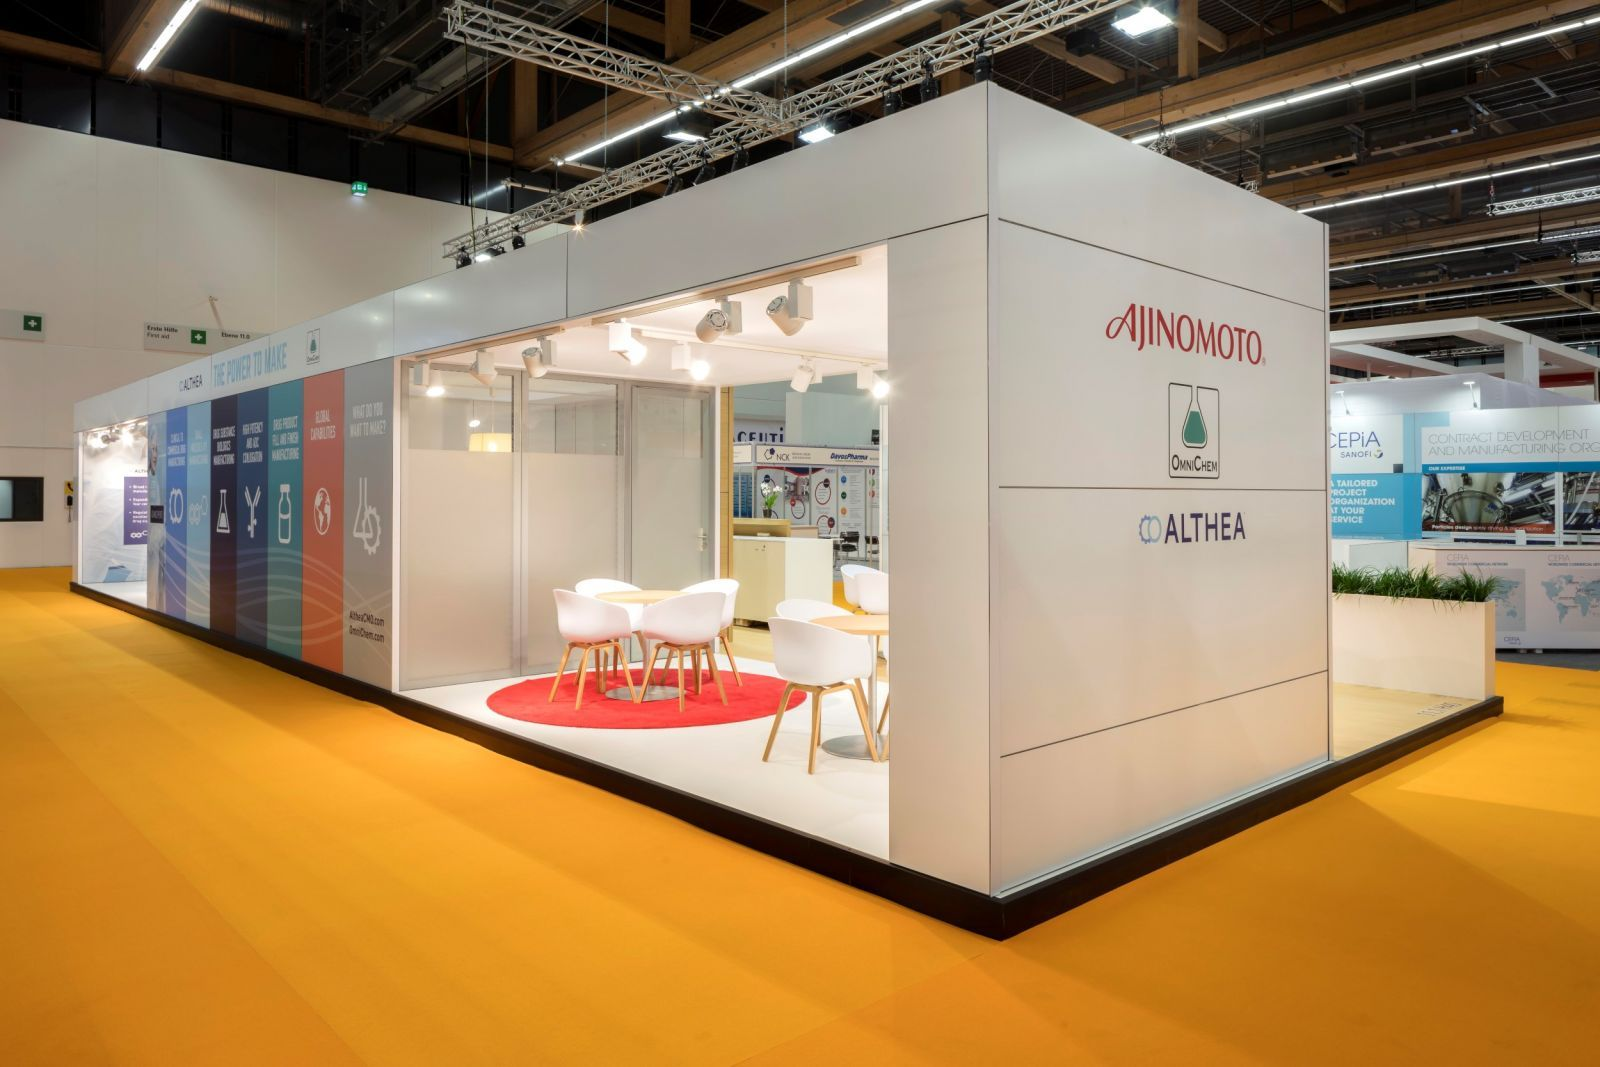 Straight Panel Trade Show Booth Design Ideas | Exhibit ...